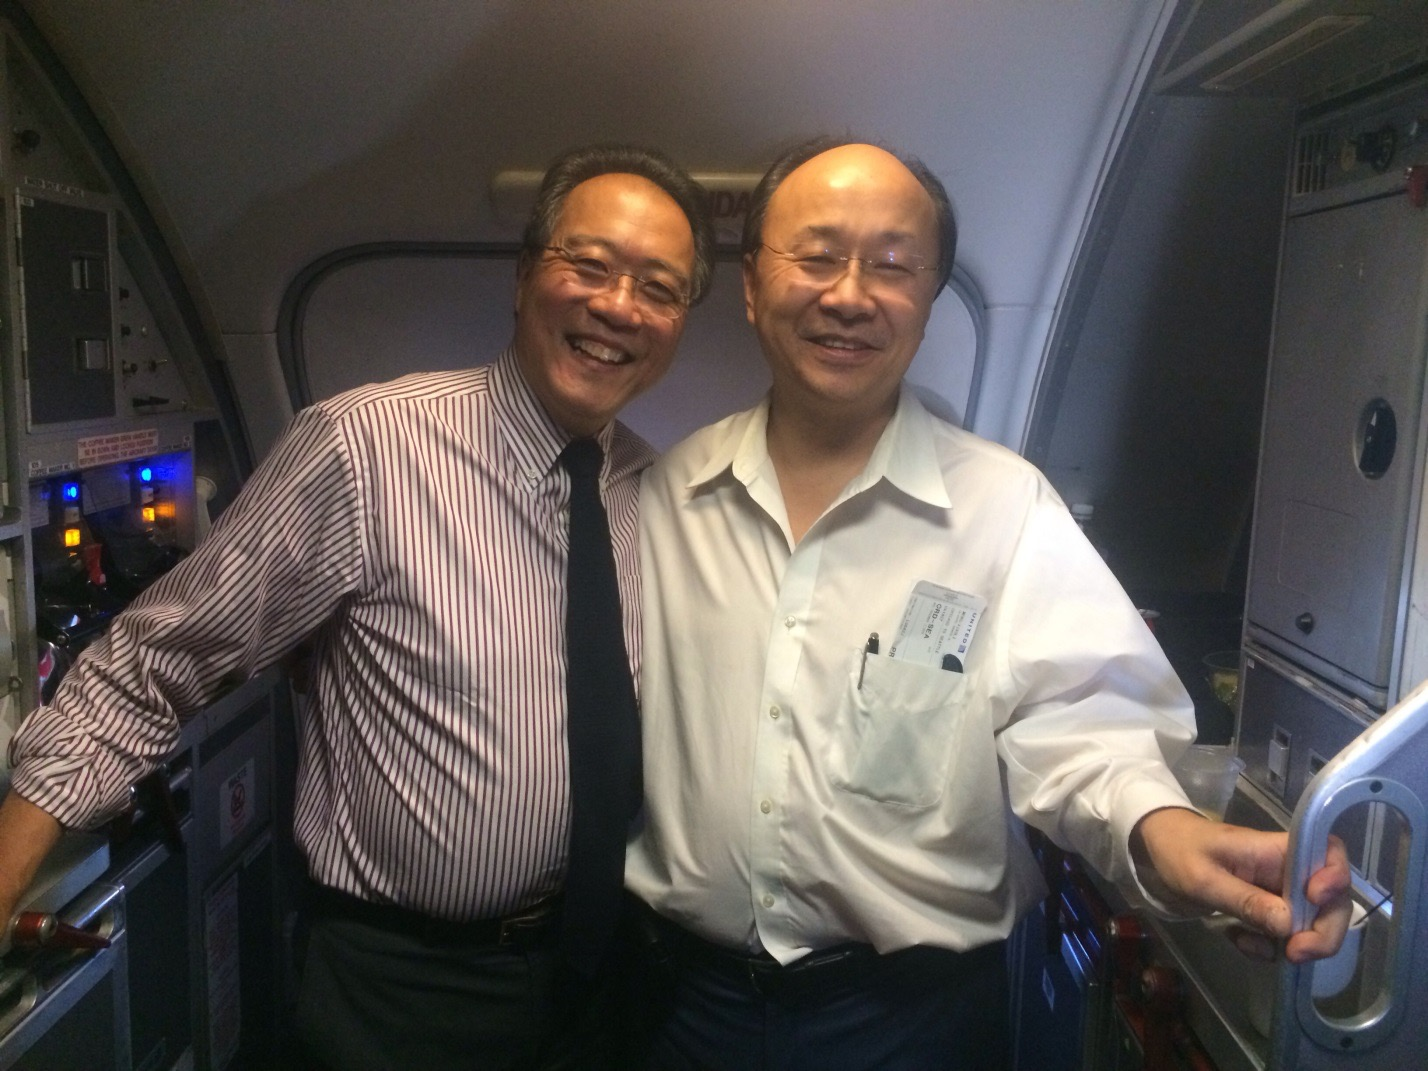 Who was sharing a flight with Xiao-Li?